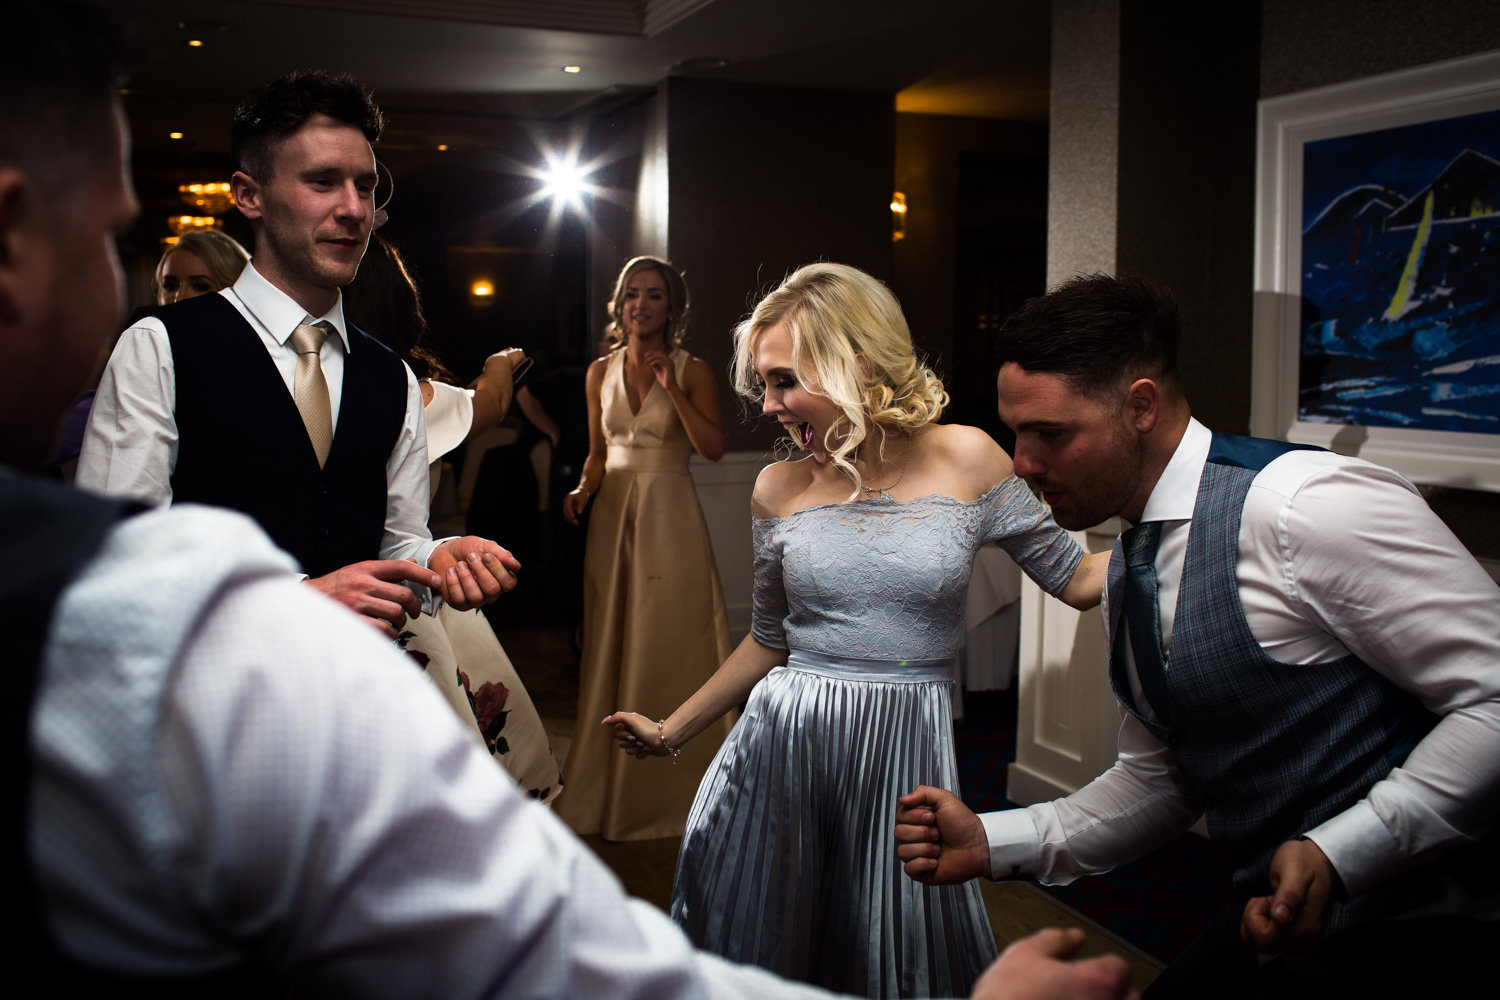 Mark_Barnes_Northern_Ireland_wedding_photographer_redcastle_hotel_Donegal_Wedding_photography_Donegal_wedding_photographer-58.jpg